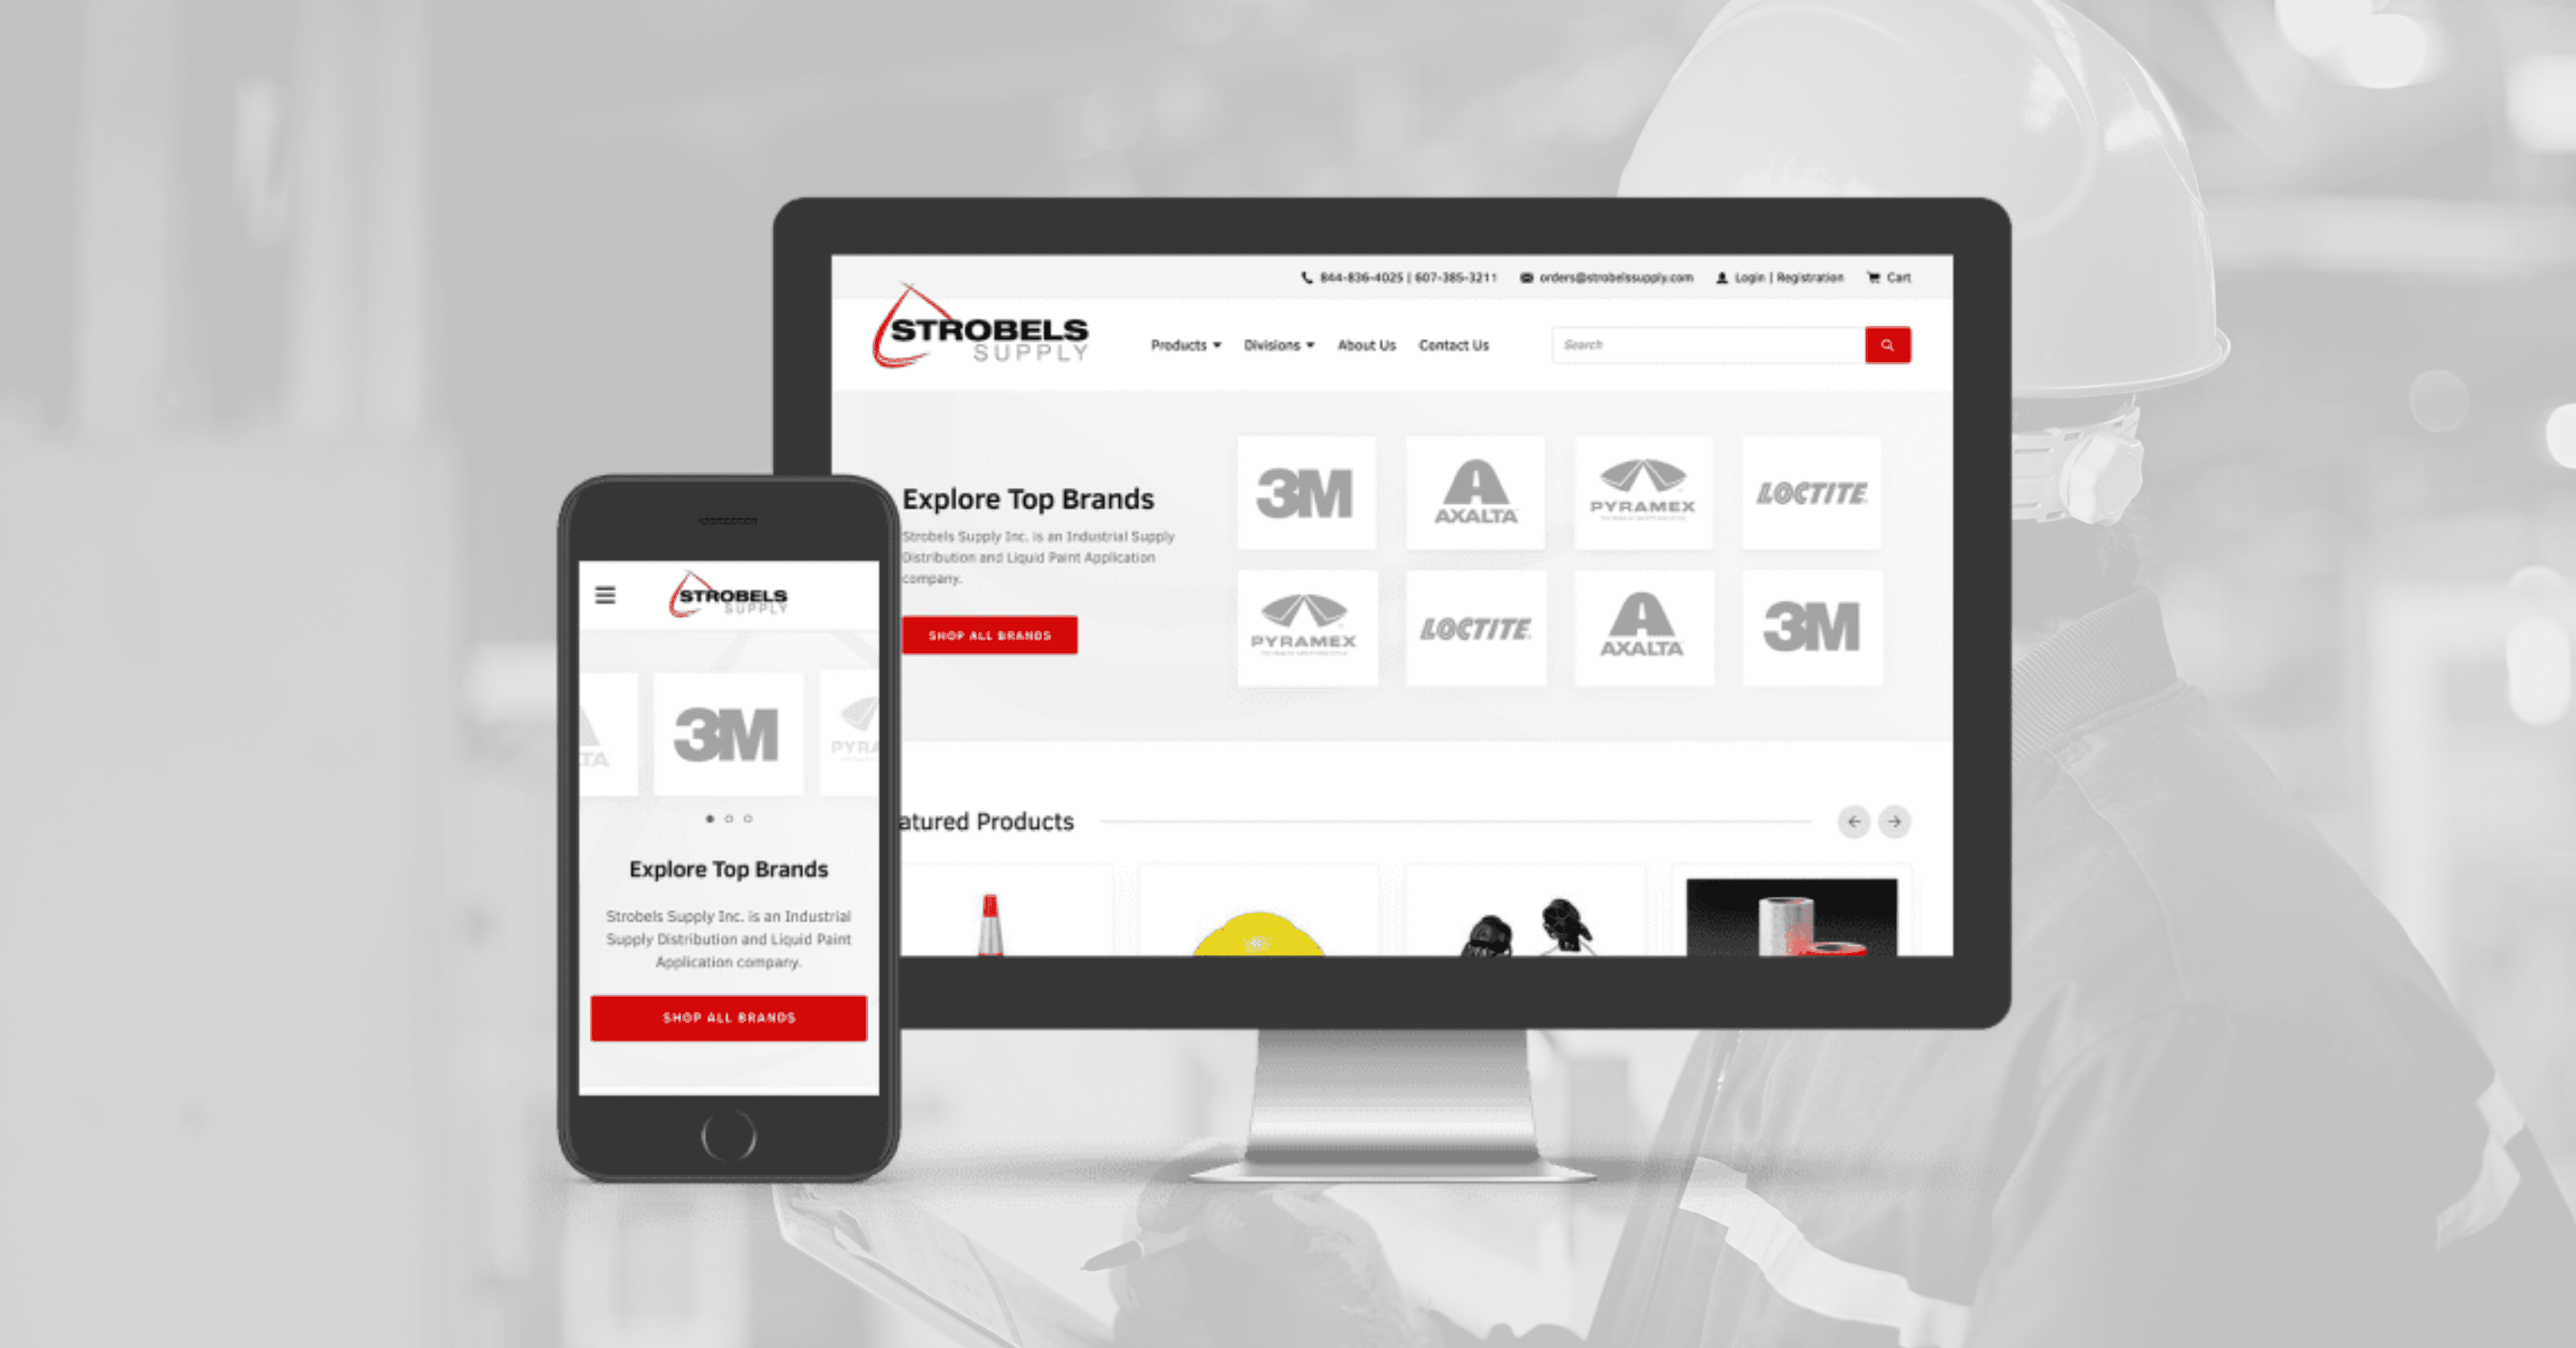 Website Migration: Strobels Supply Migrates From Magento 1 To BigCommerce